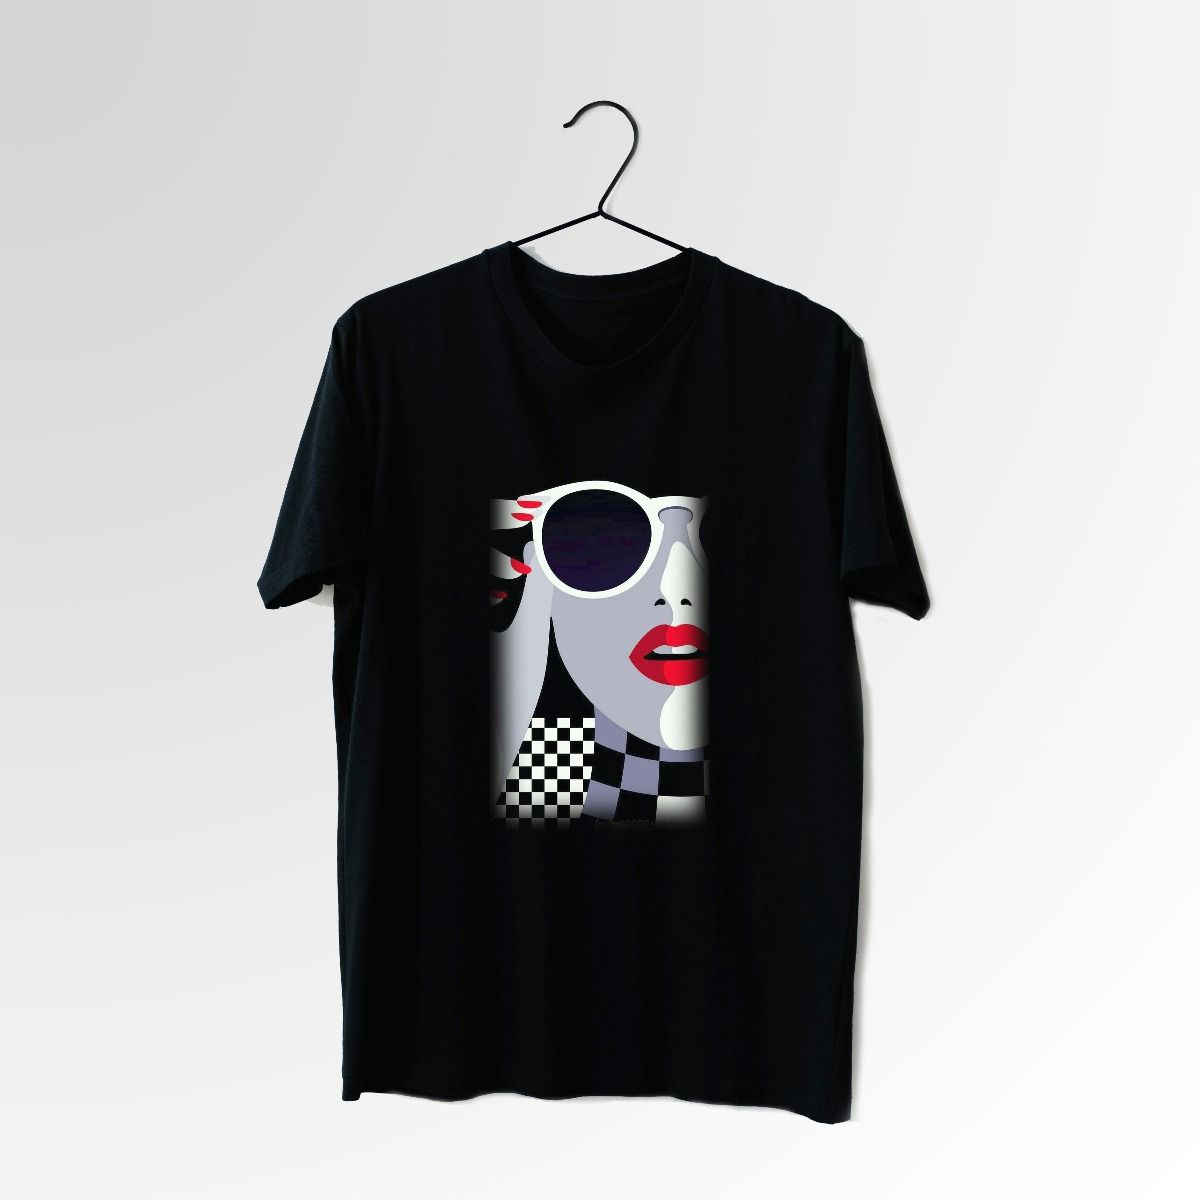 Insta Print All T-Shirt Non Custom